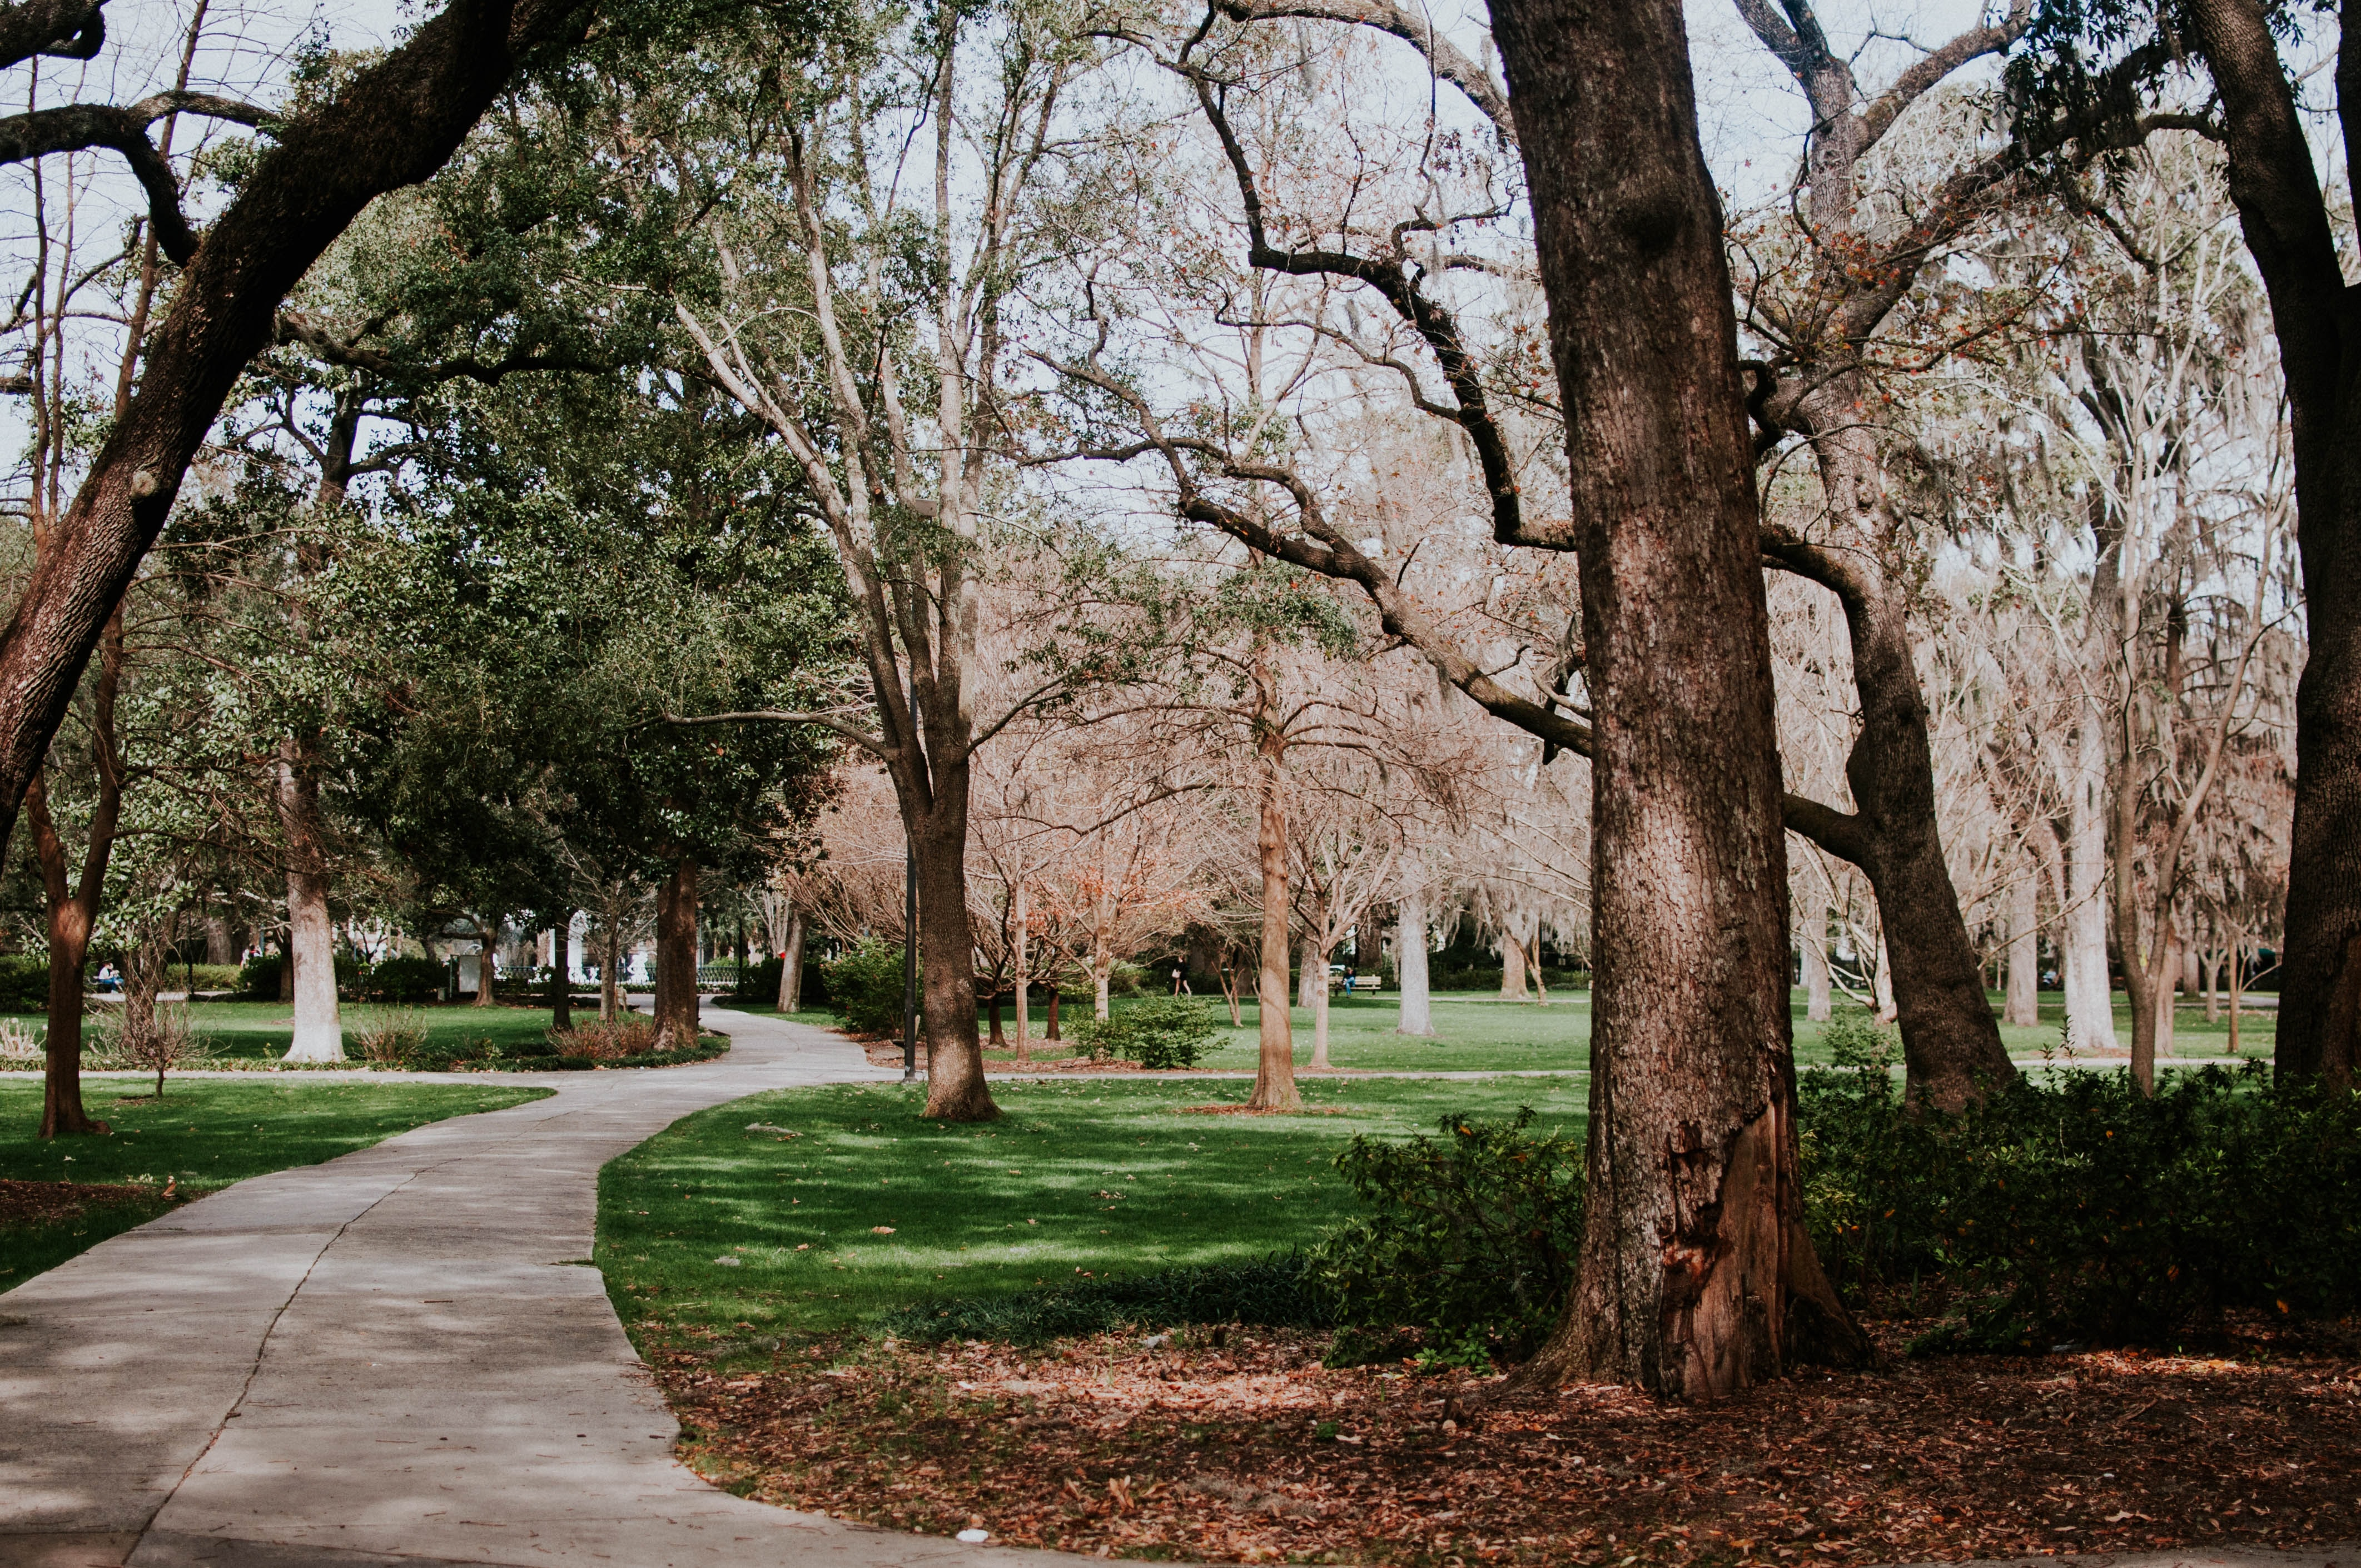 A path in Forsyth Park surrounded by trees and grass